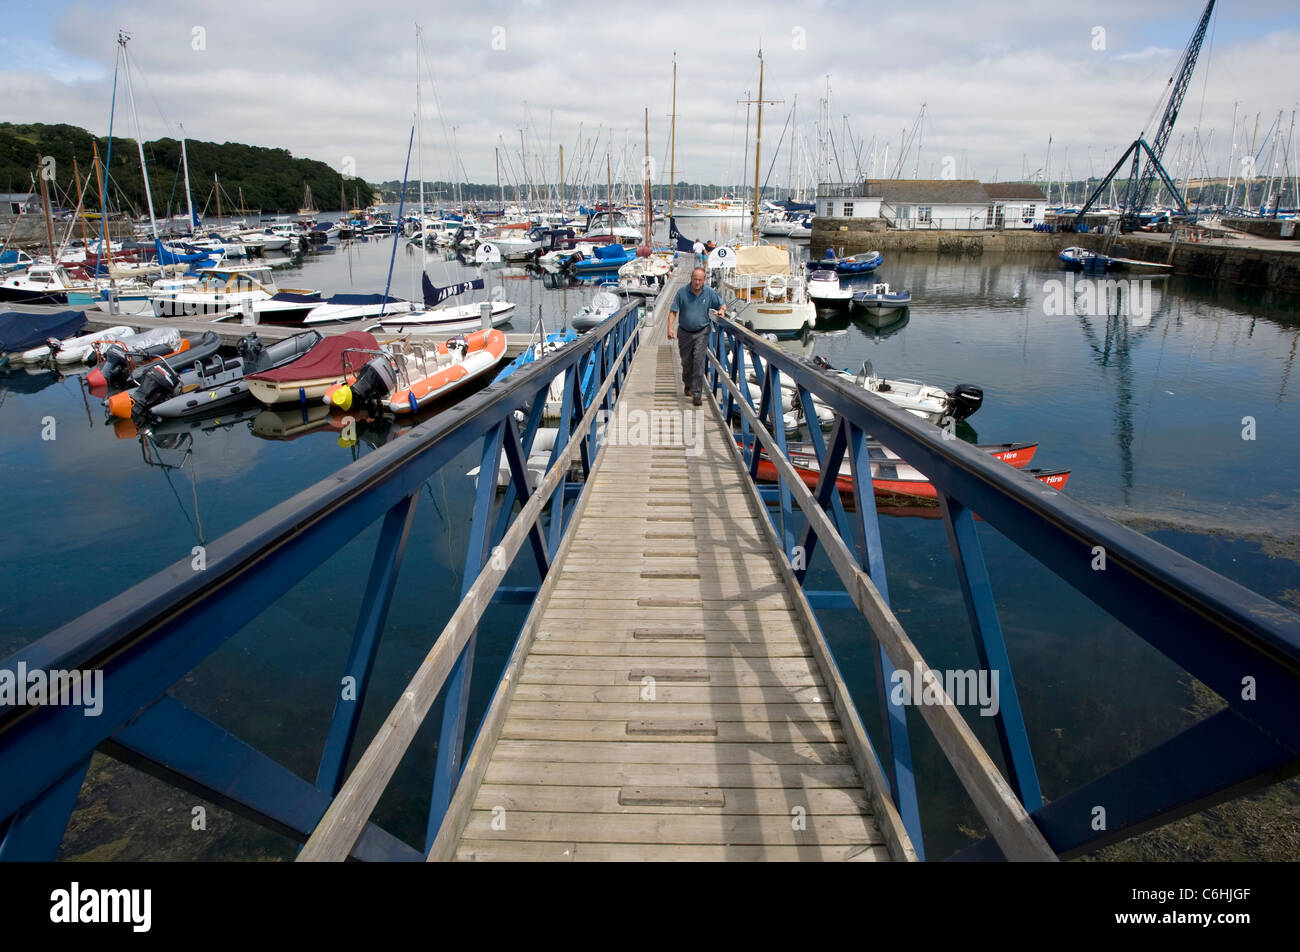 Pontoon bridge leading down to the moored boats at Mylor yacht harbour - Stock Image